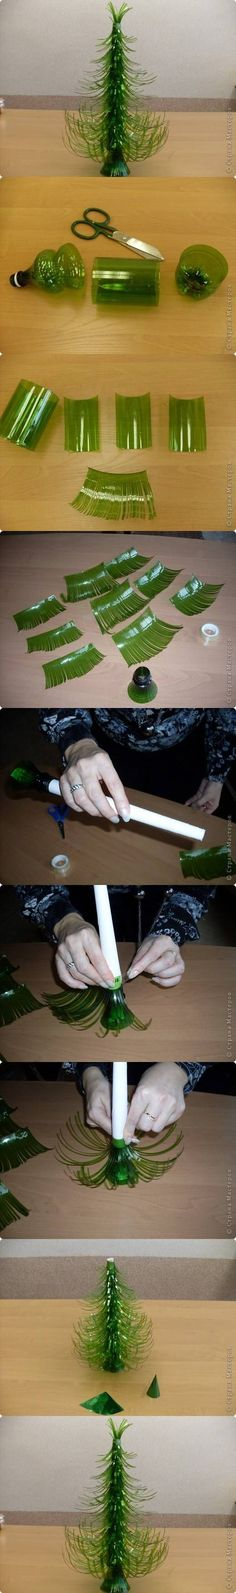 AMAZING Plastic Bottle Christmas Trees ~~~ DIY Projects | UsefulDIY.com Follow…